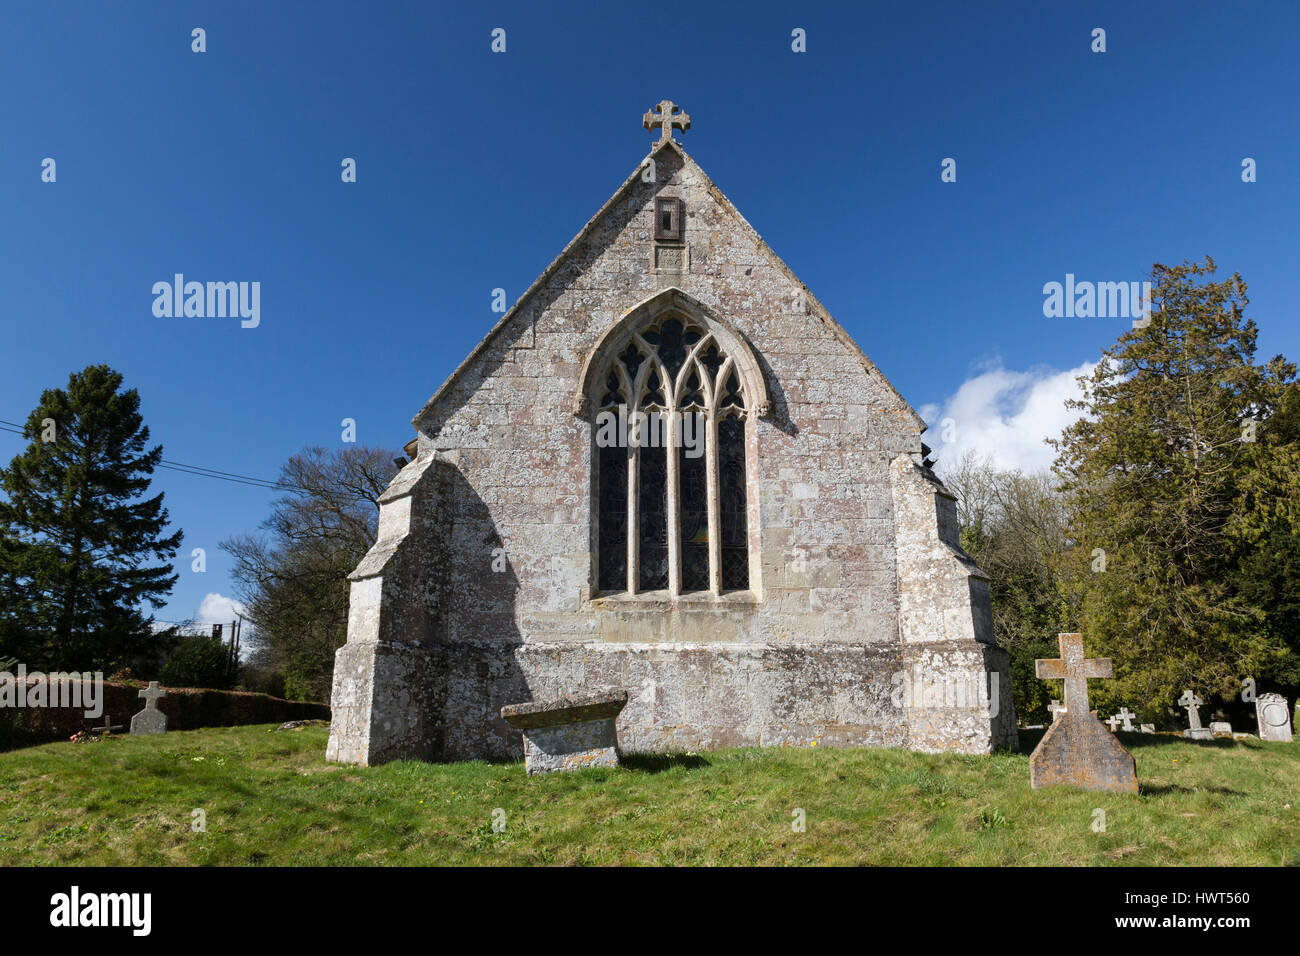 St Cosmas & St Damian Church in the pretty Wiltshire village of Sherrington - Stock Image